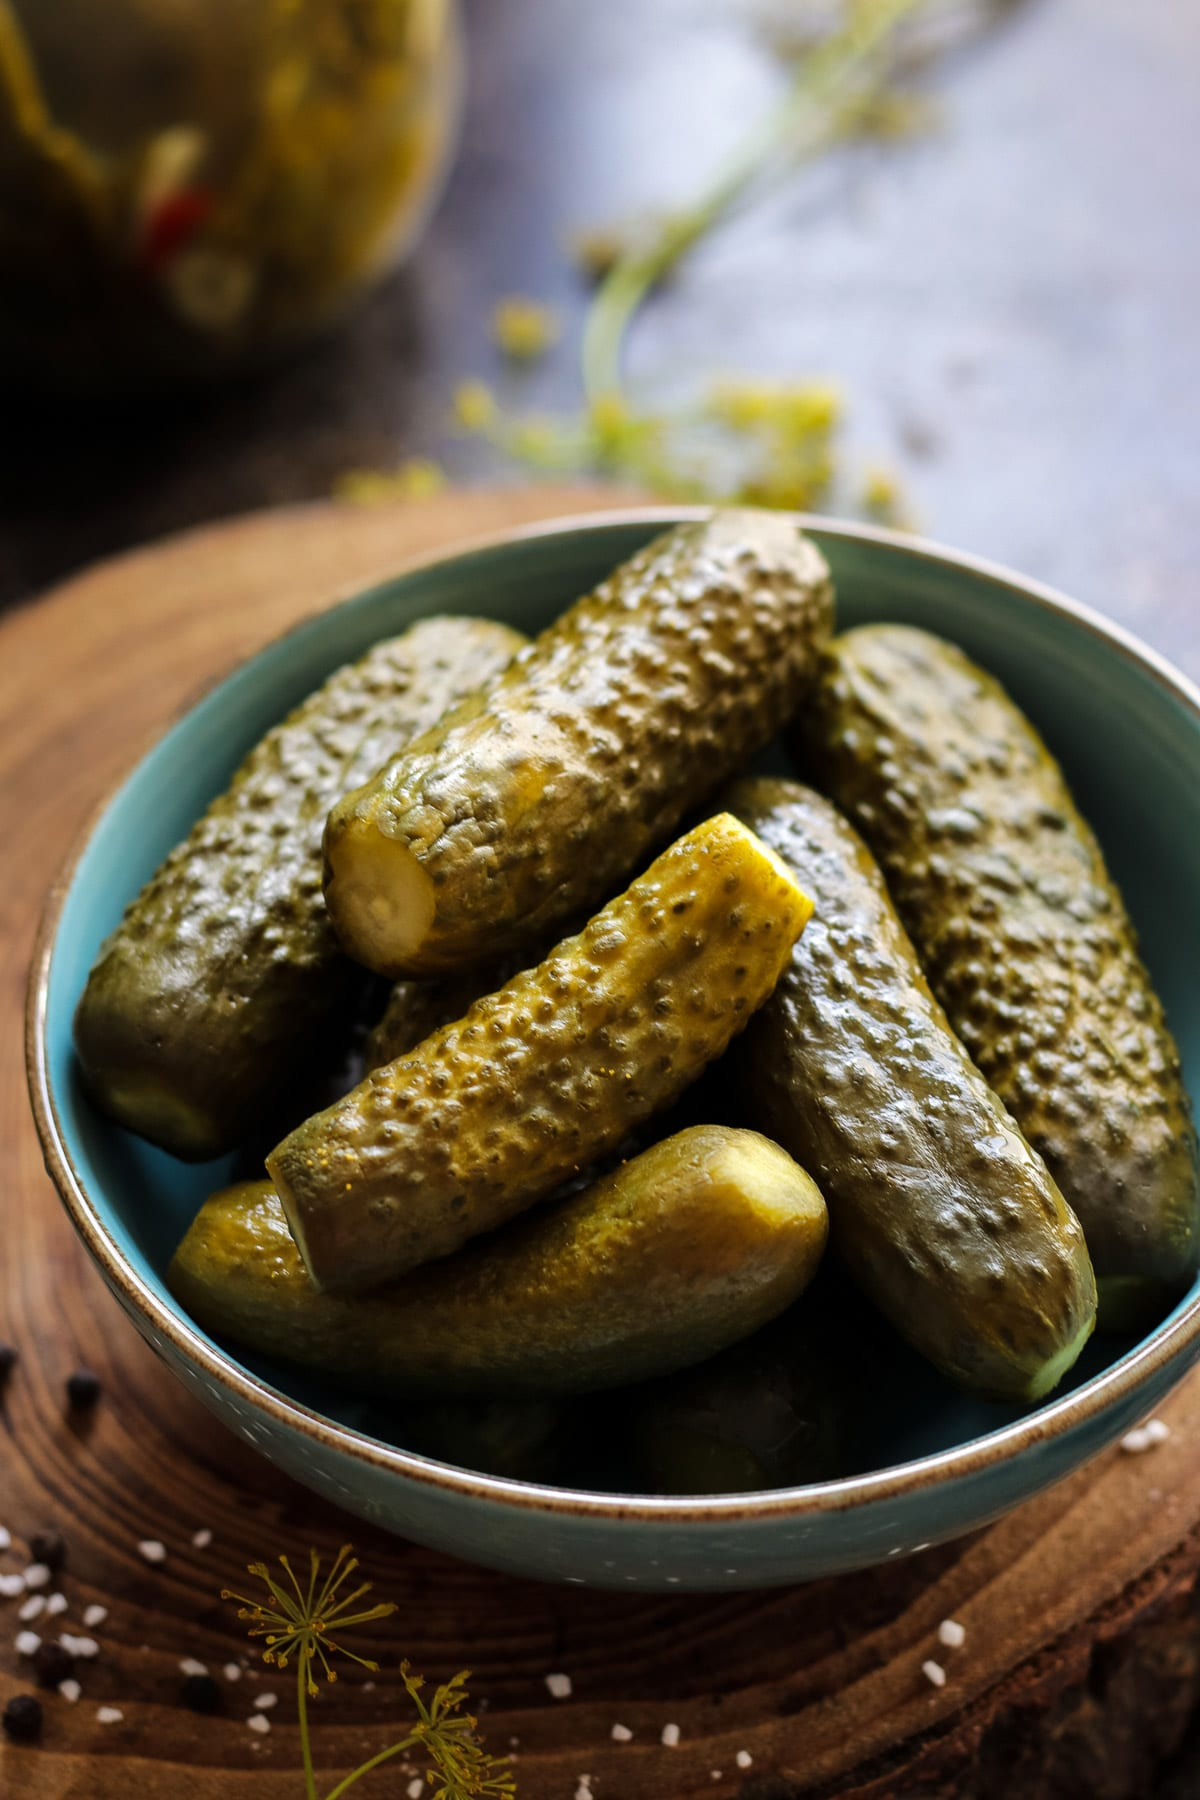 Russian dill pickles in a bowl